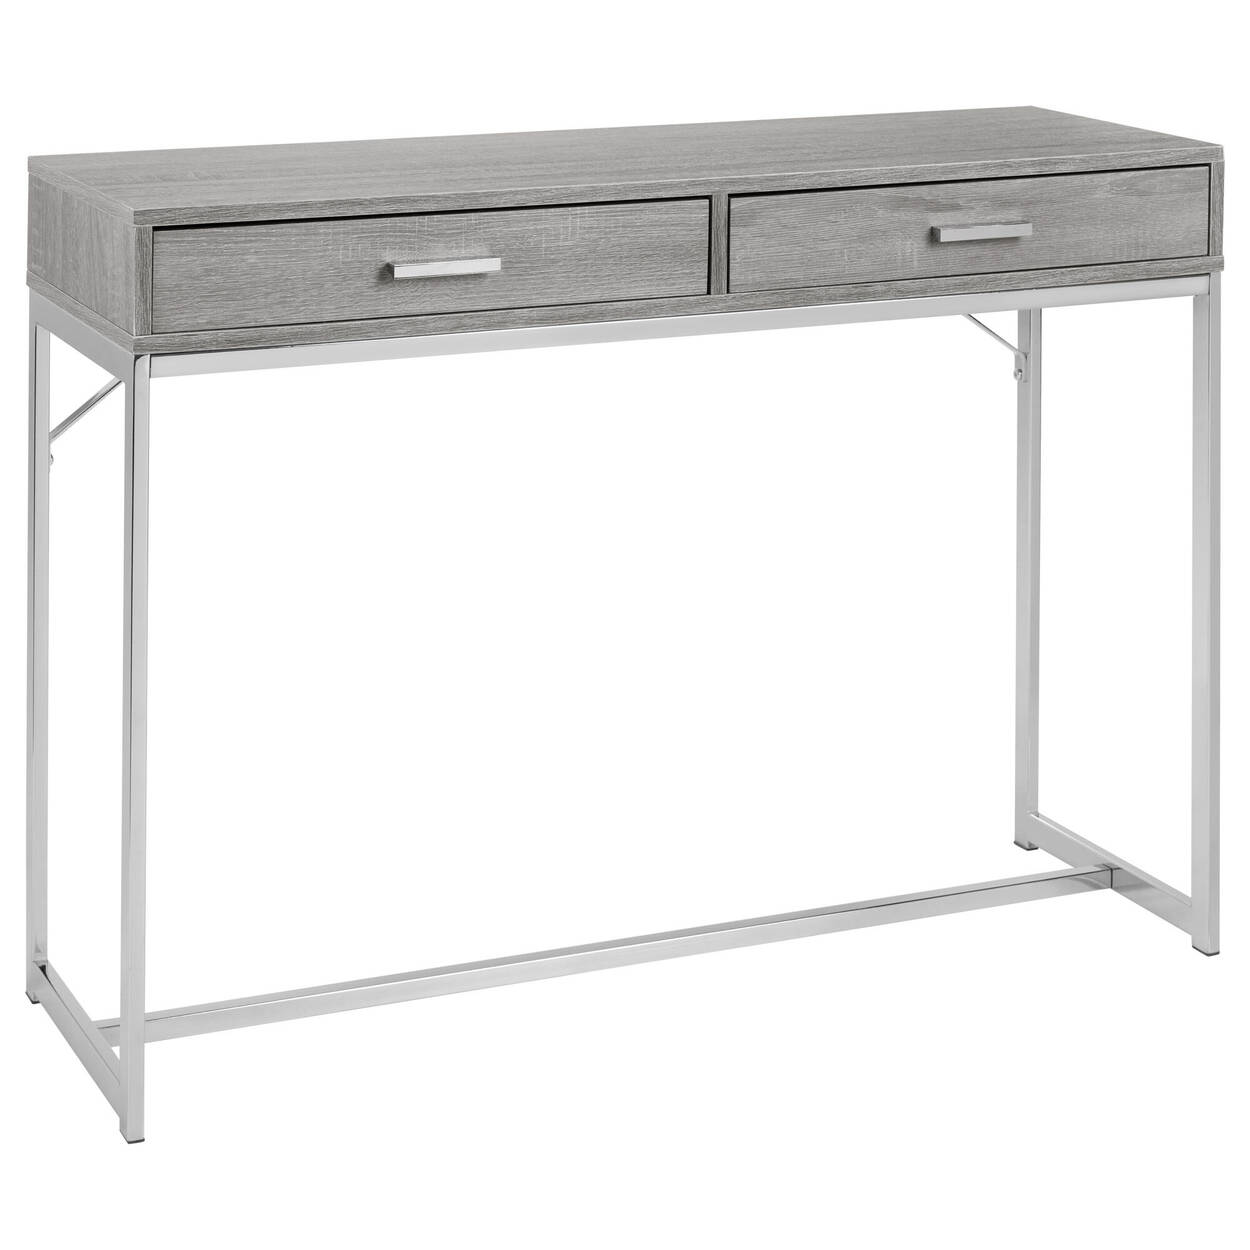 2-Drawer Veneer and Chrome Console Table